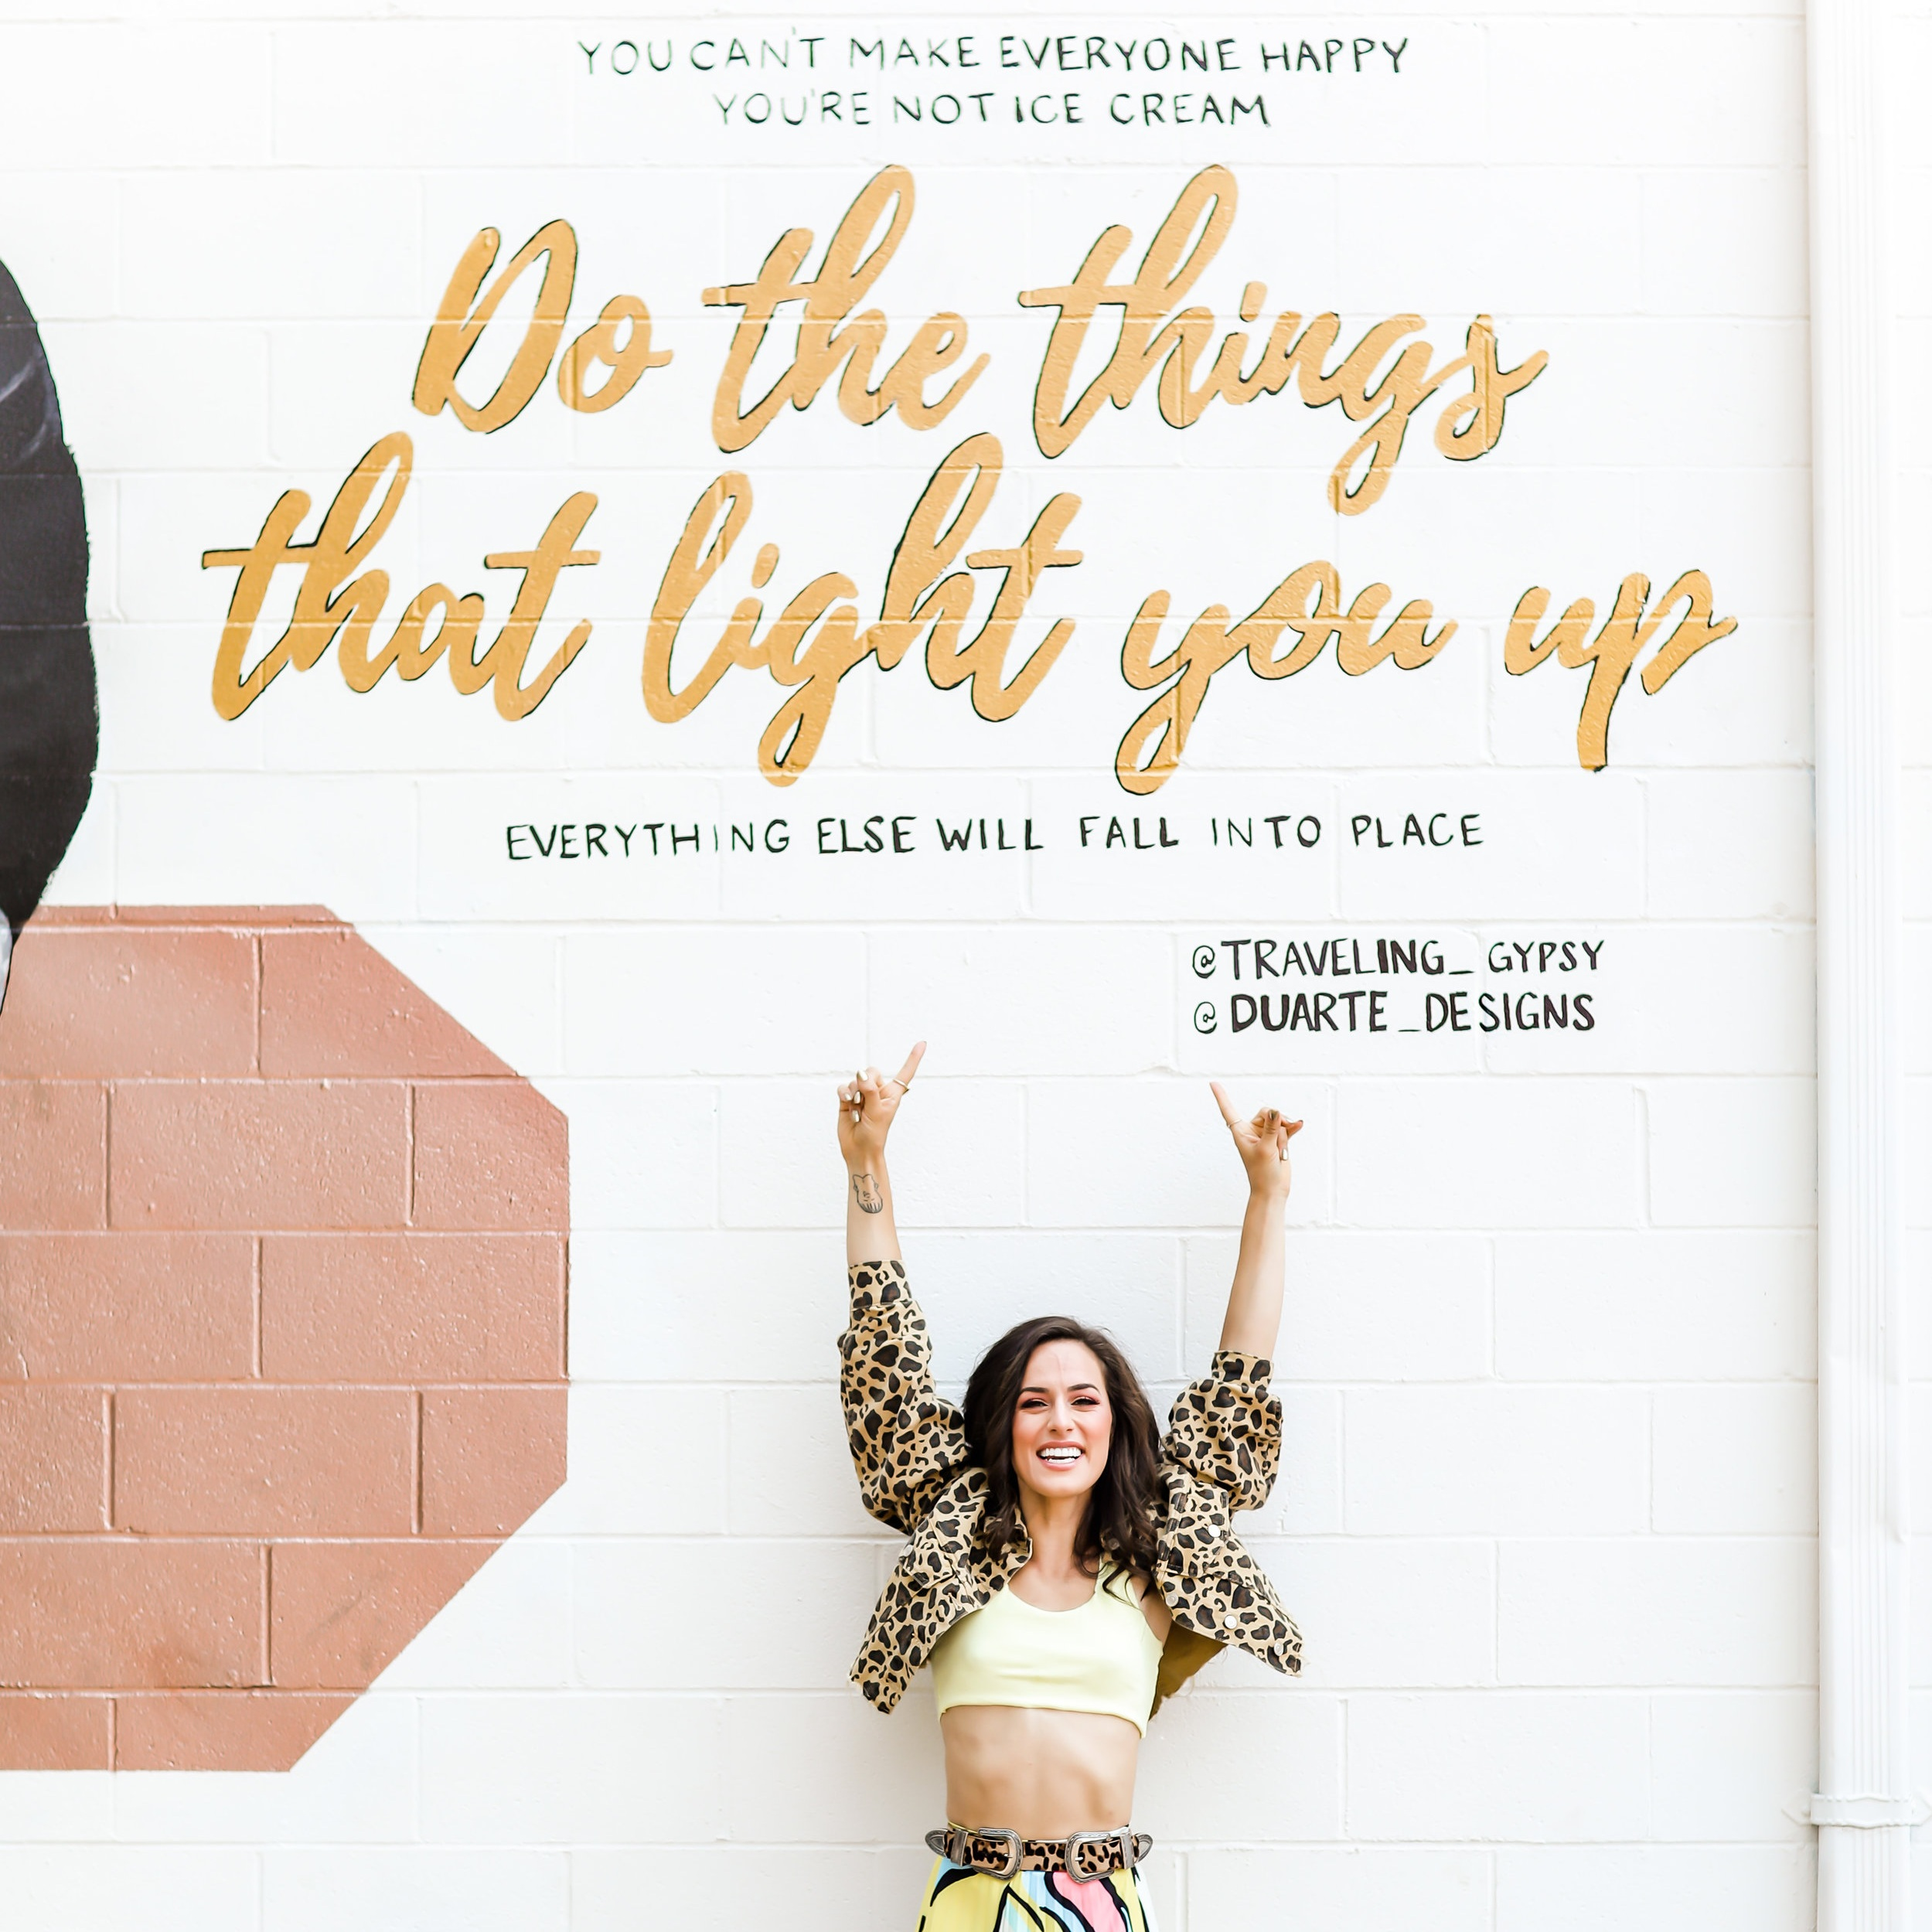 Do the things that light you up